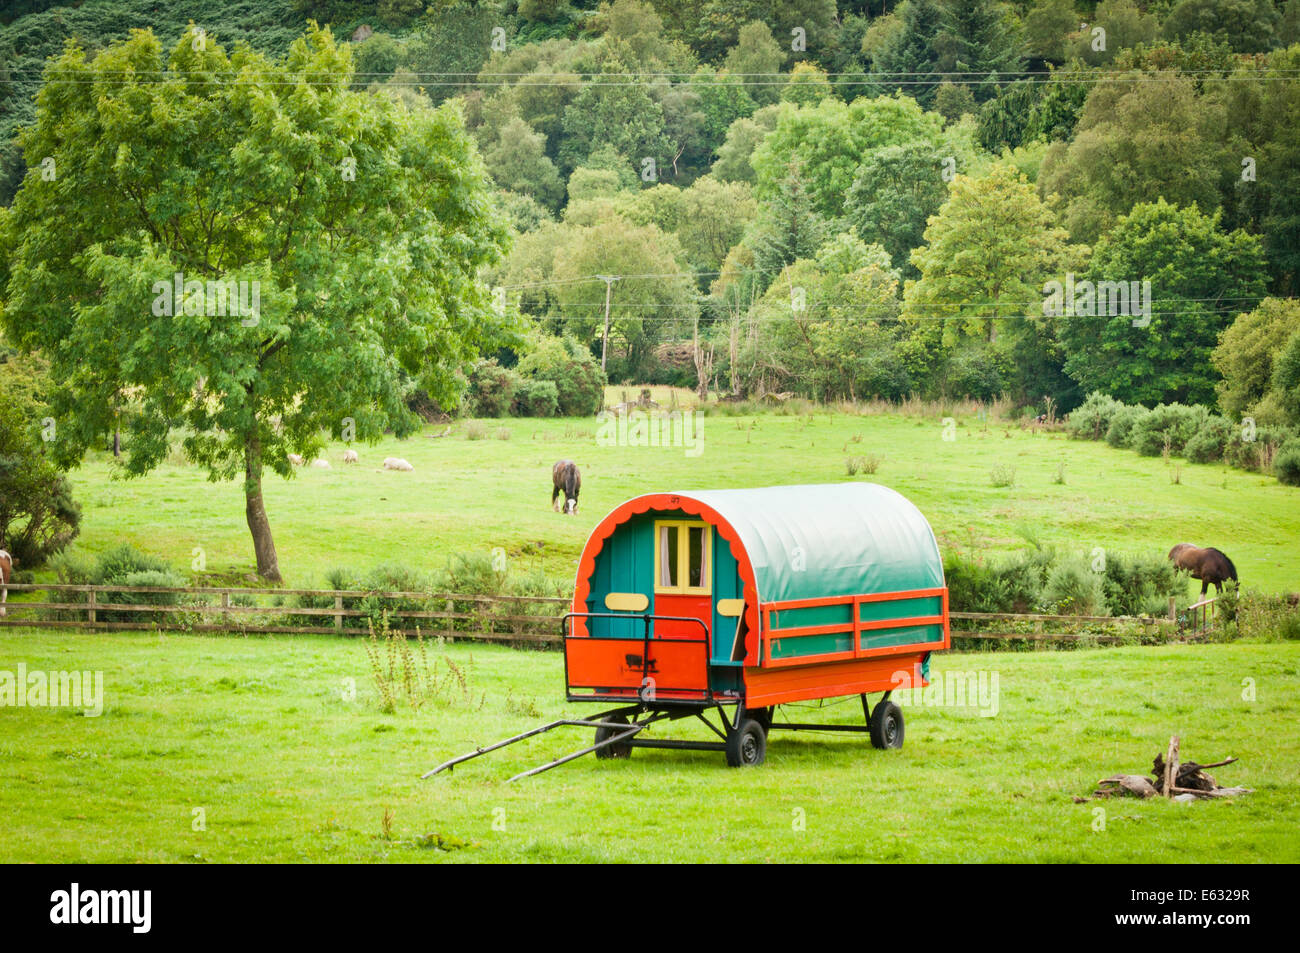 Traditional Gypsy Caravan in Countryside - Stock Image